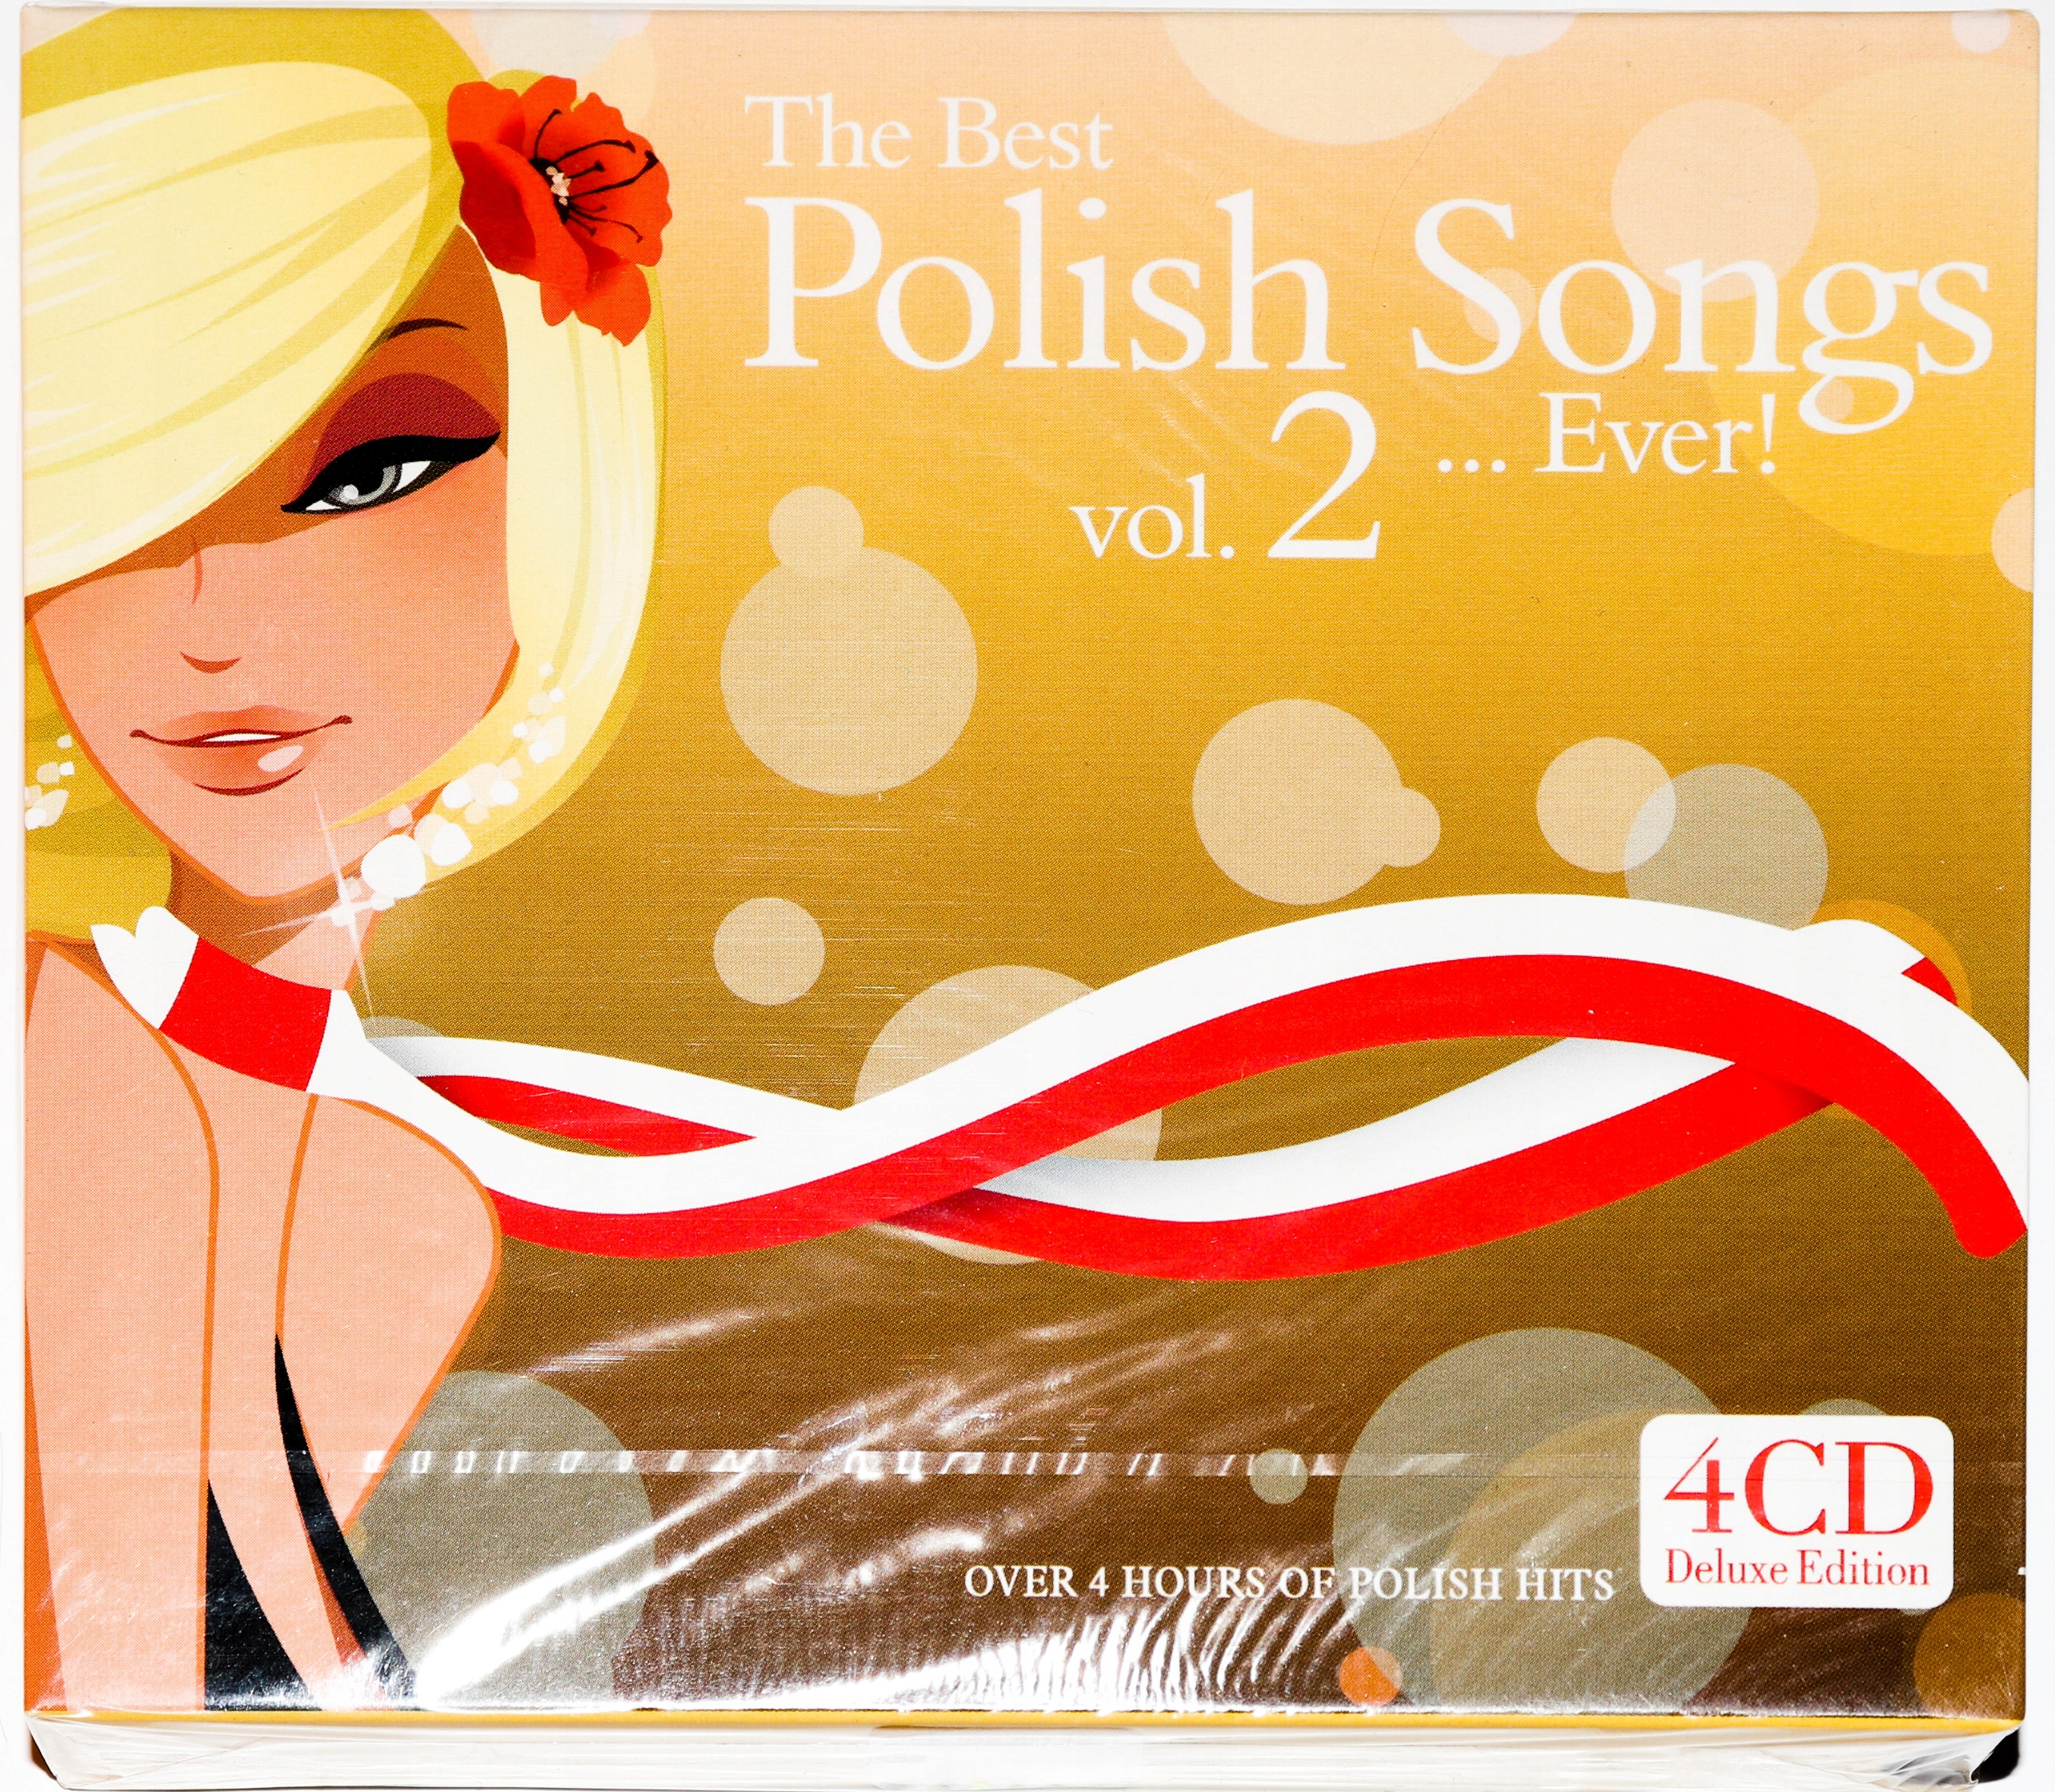 Item THE BEST RUSSIAN SONGS EVER! VOL.2 = 4 CD = TAPE